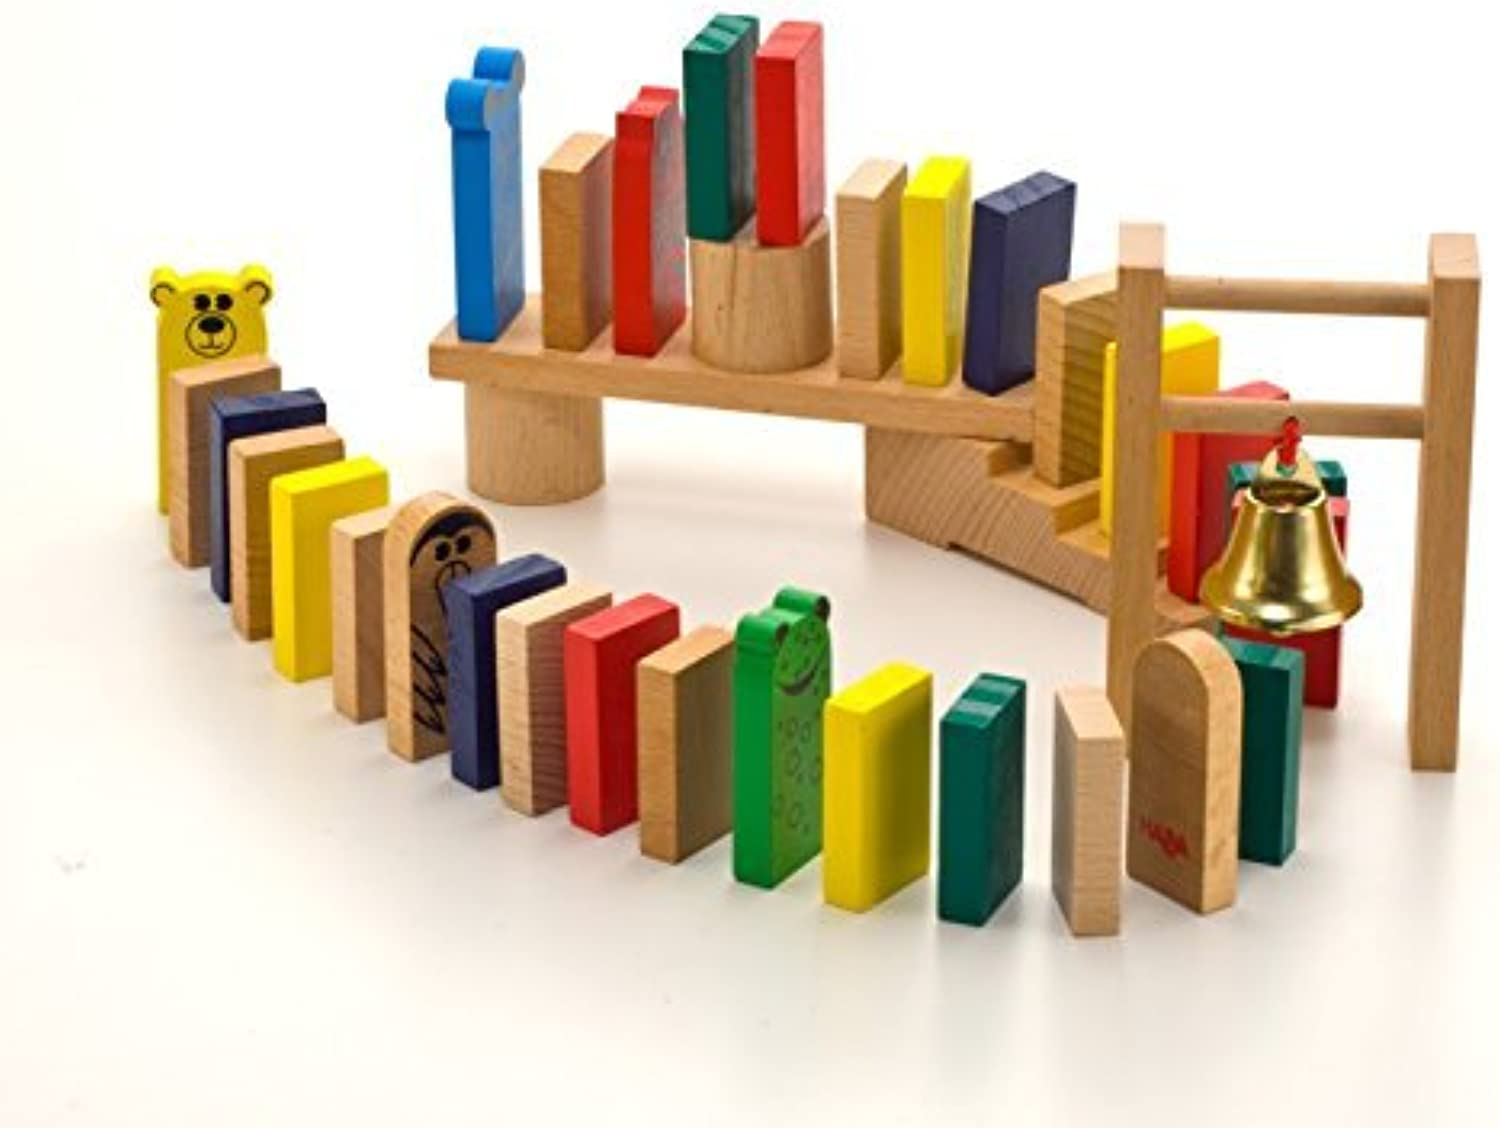 HABA Go-Go Wooden Dominoes 204 Piece Play Set by HABA